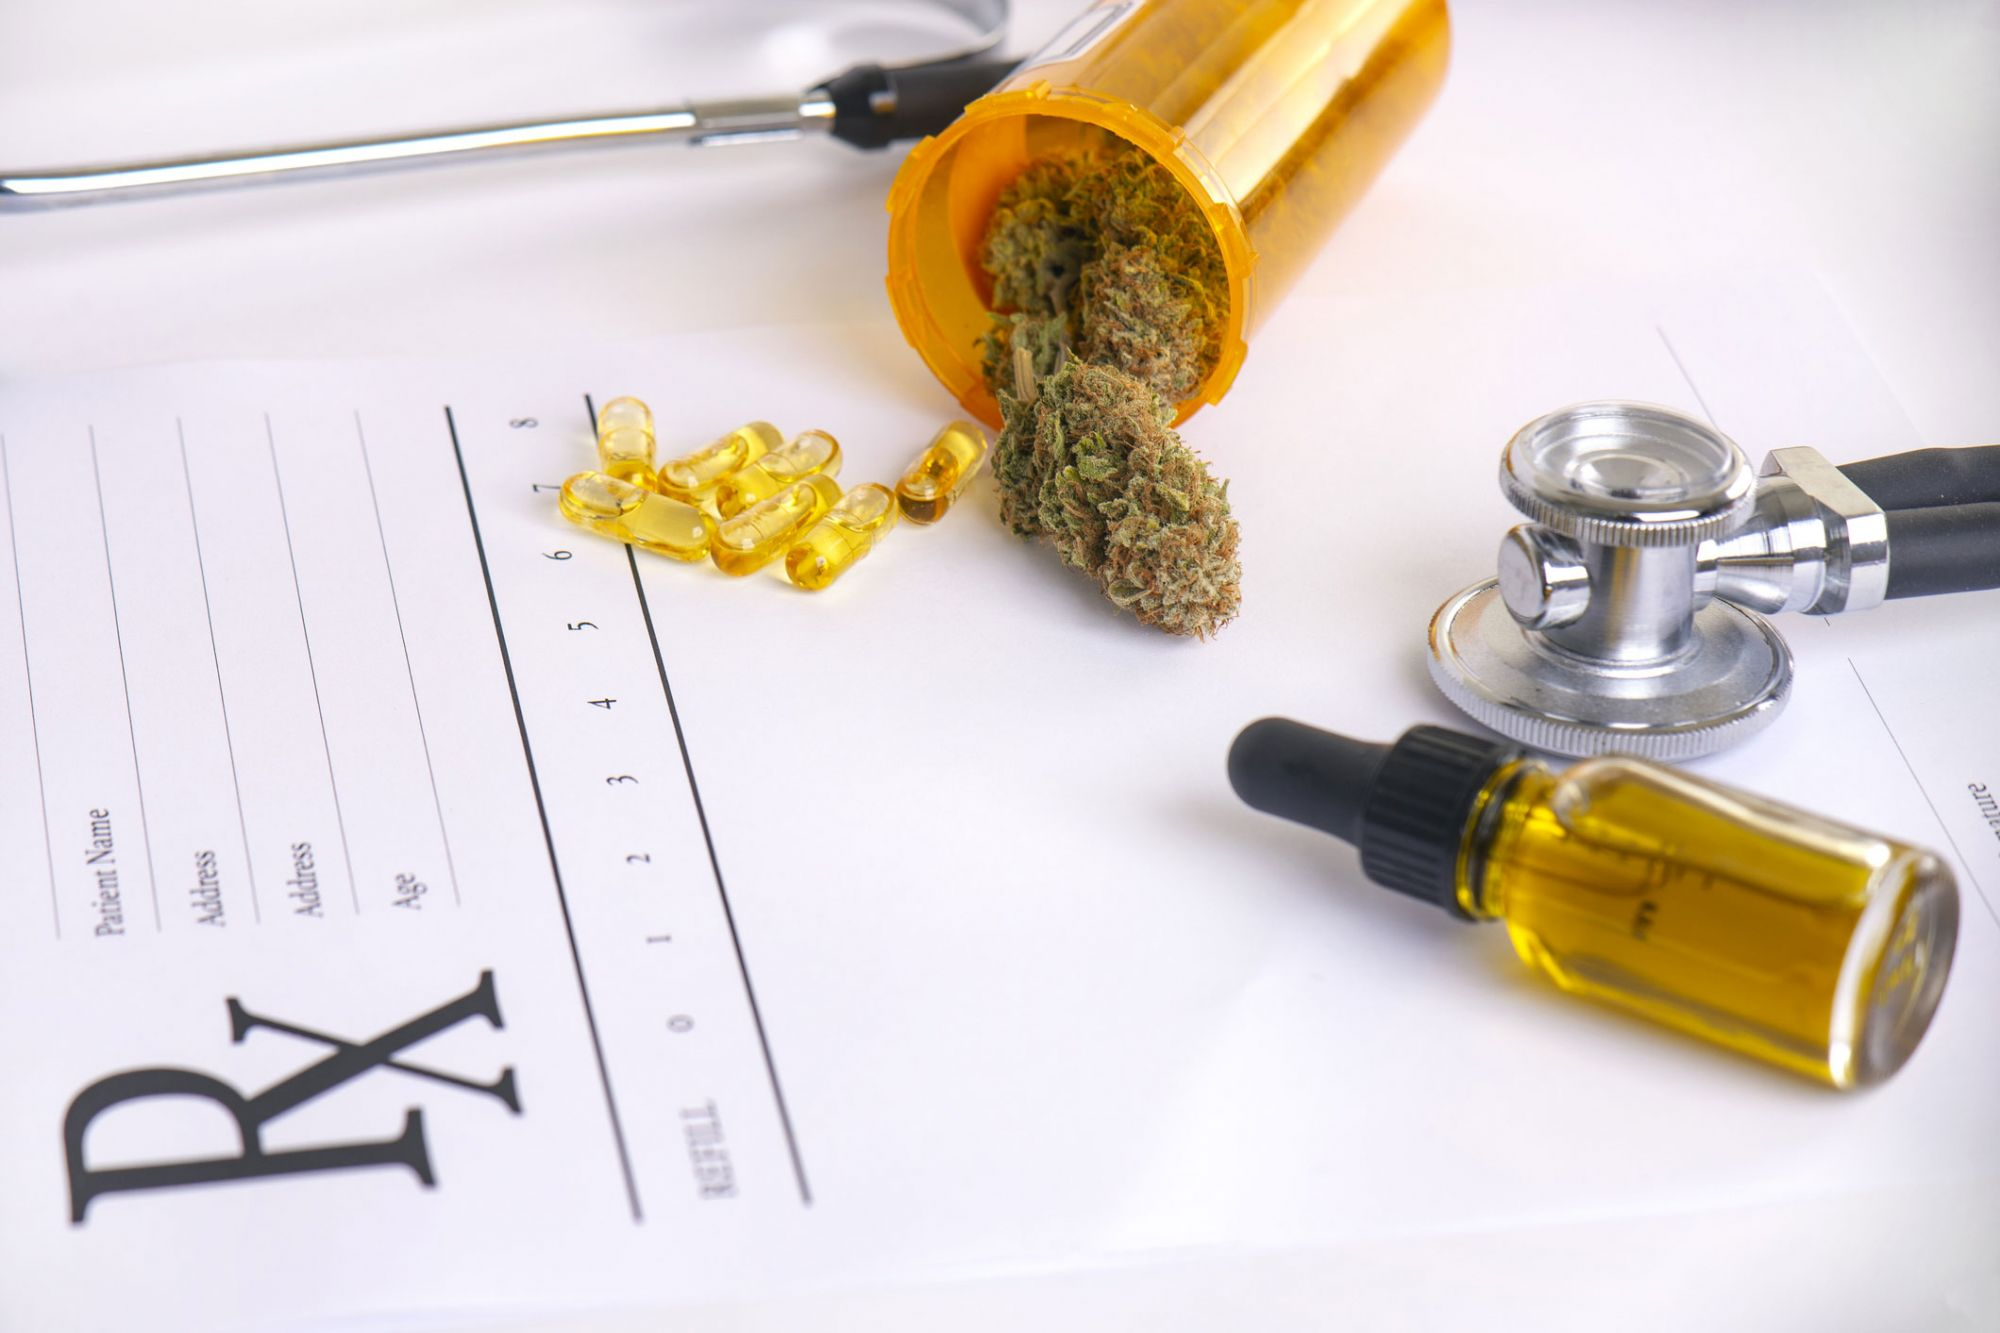 How Medical Marijuana Can Help With Amyotrophic Lateral Sclerosis (ALS) Or Lou Gehrig's Disease